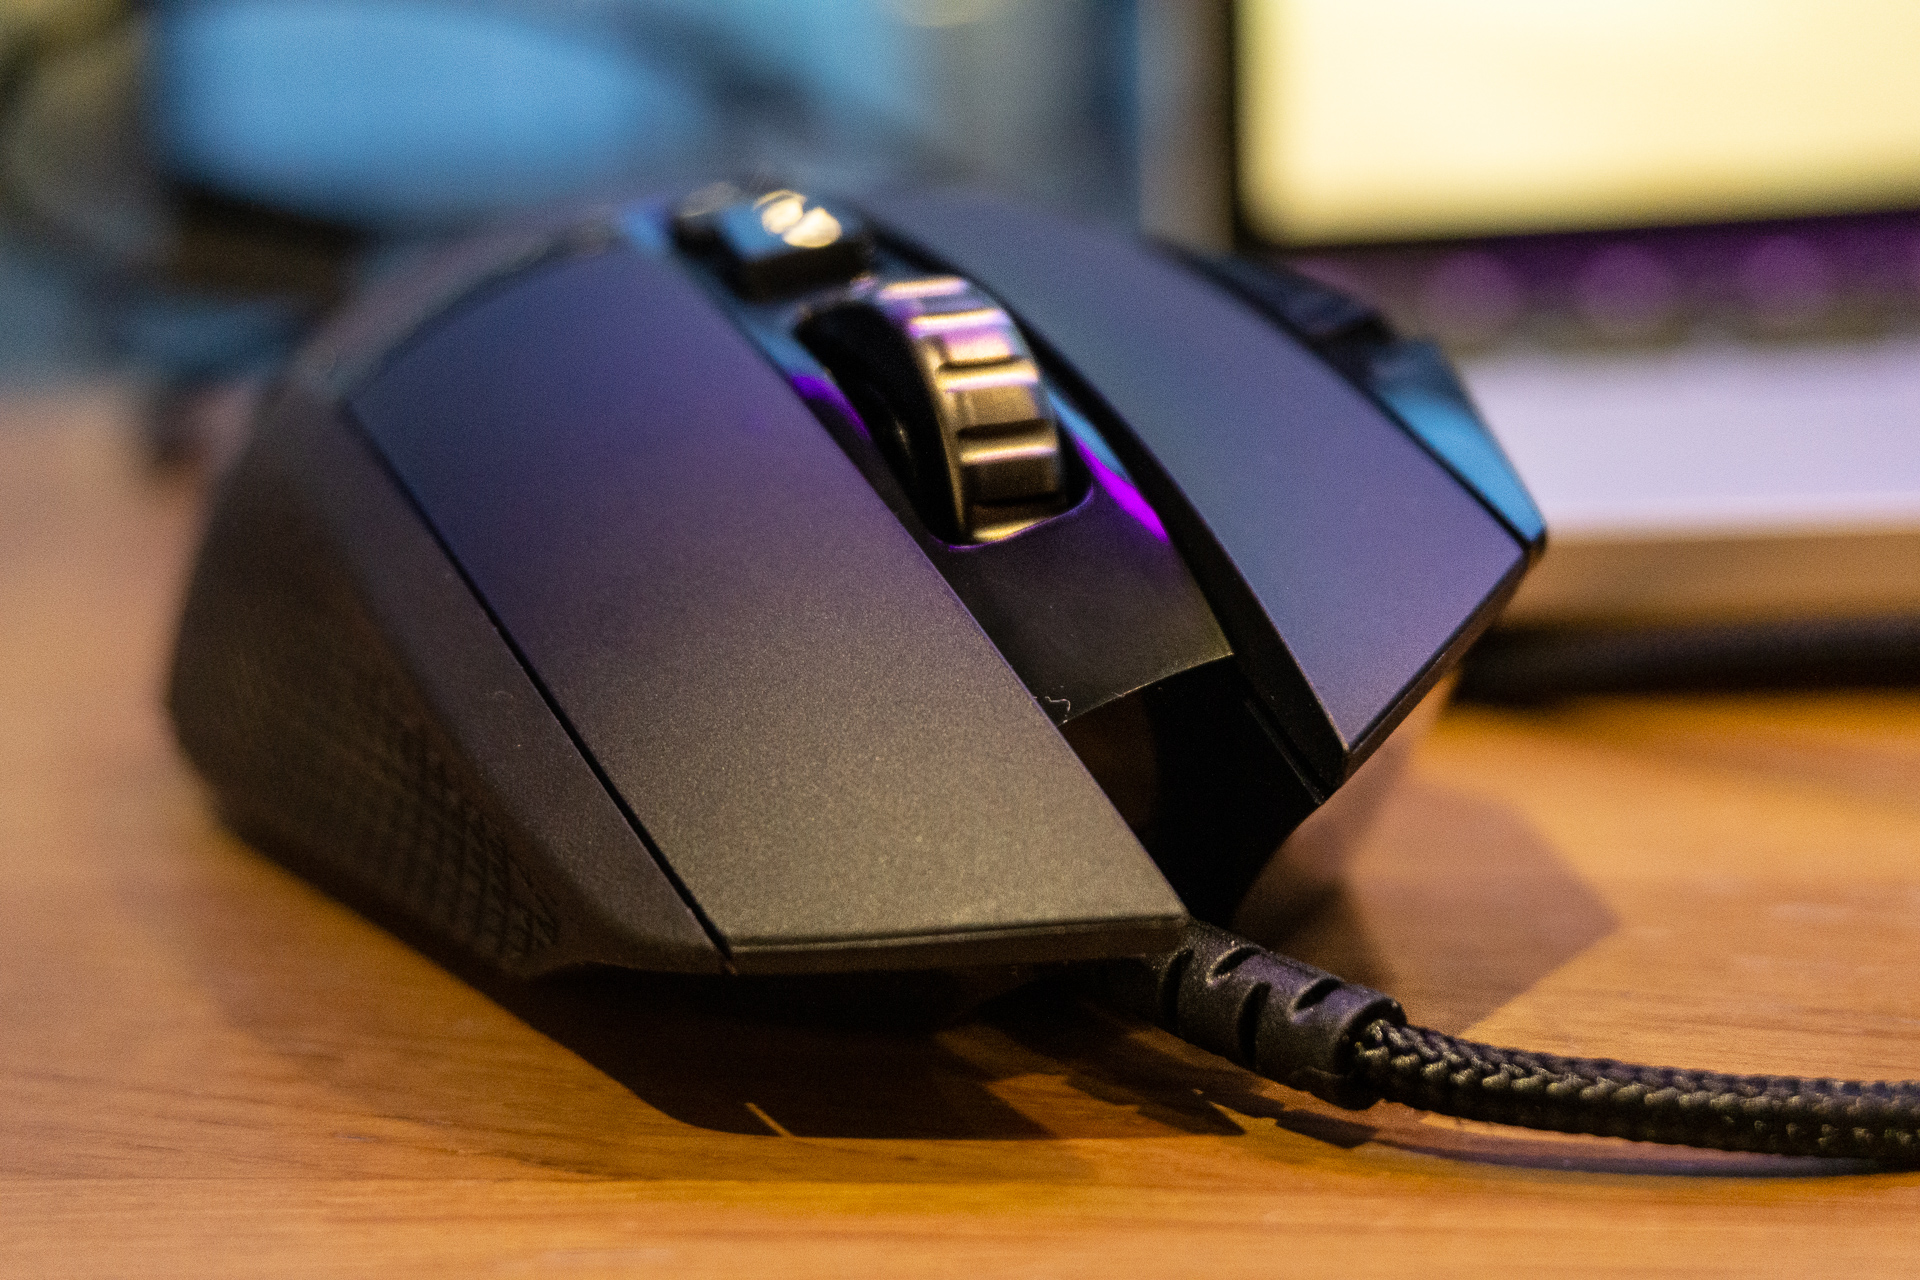 Logitech has perfected its most-bought gaming mouse  Logitech G502 HERO -  Spider s Web